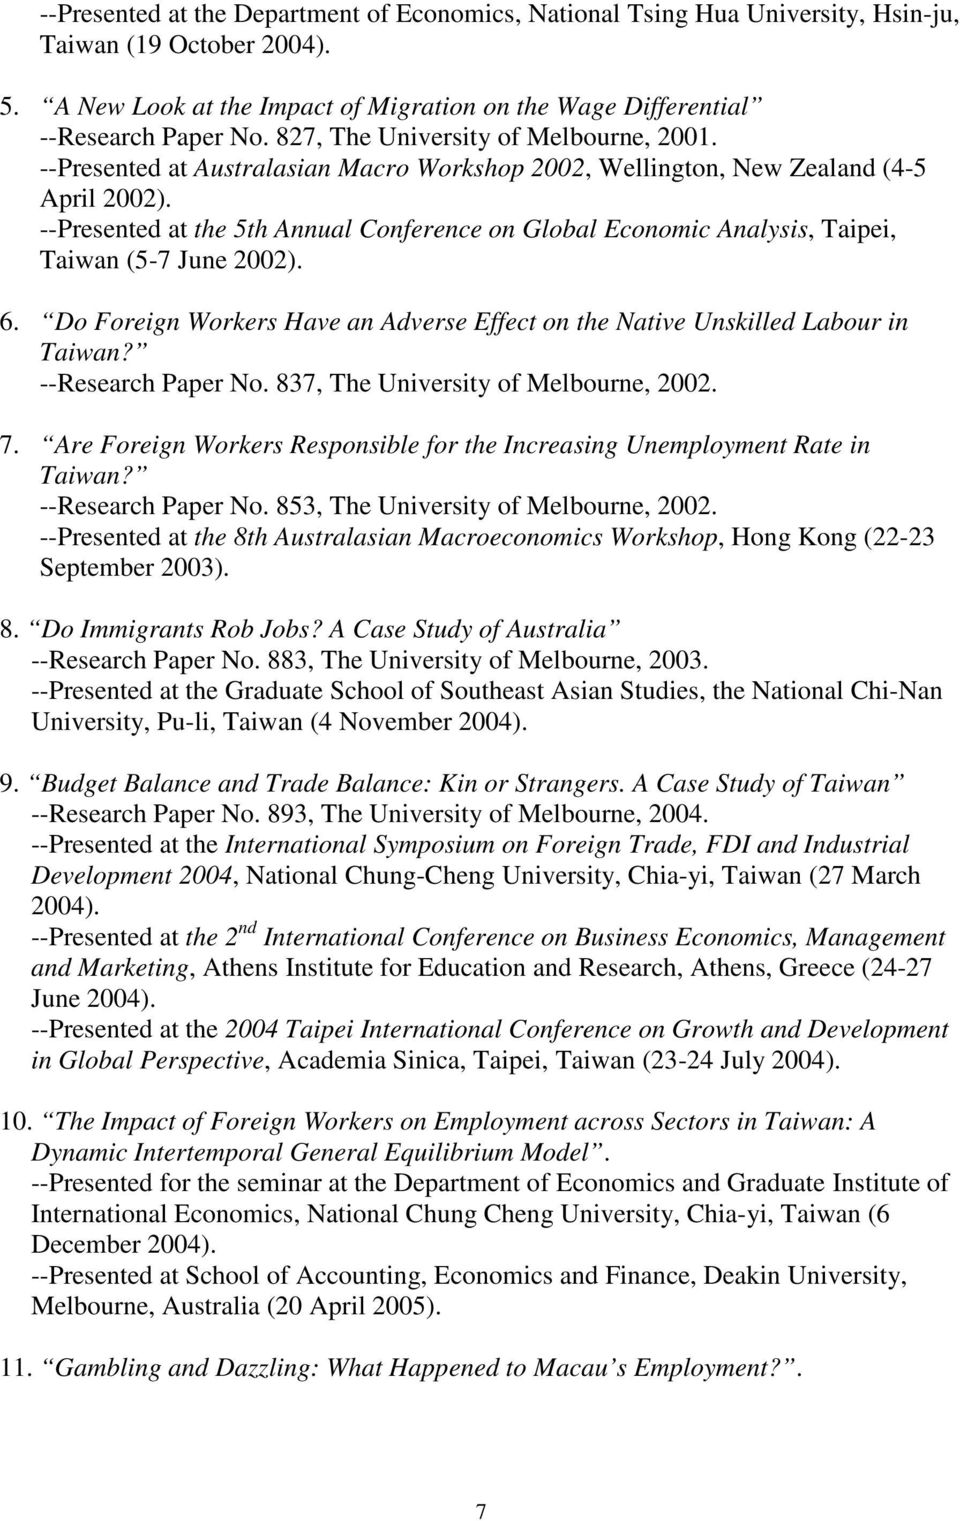 --Presented at the 5th Annual Conference on Global Economic Analysis, Taipei, Taiwan (5-7 June 2002). 6. Do Foreign Workers Have an Adverse Effect on the Native Unskilled Labour in Taiwan?